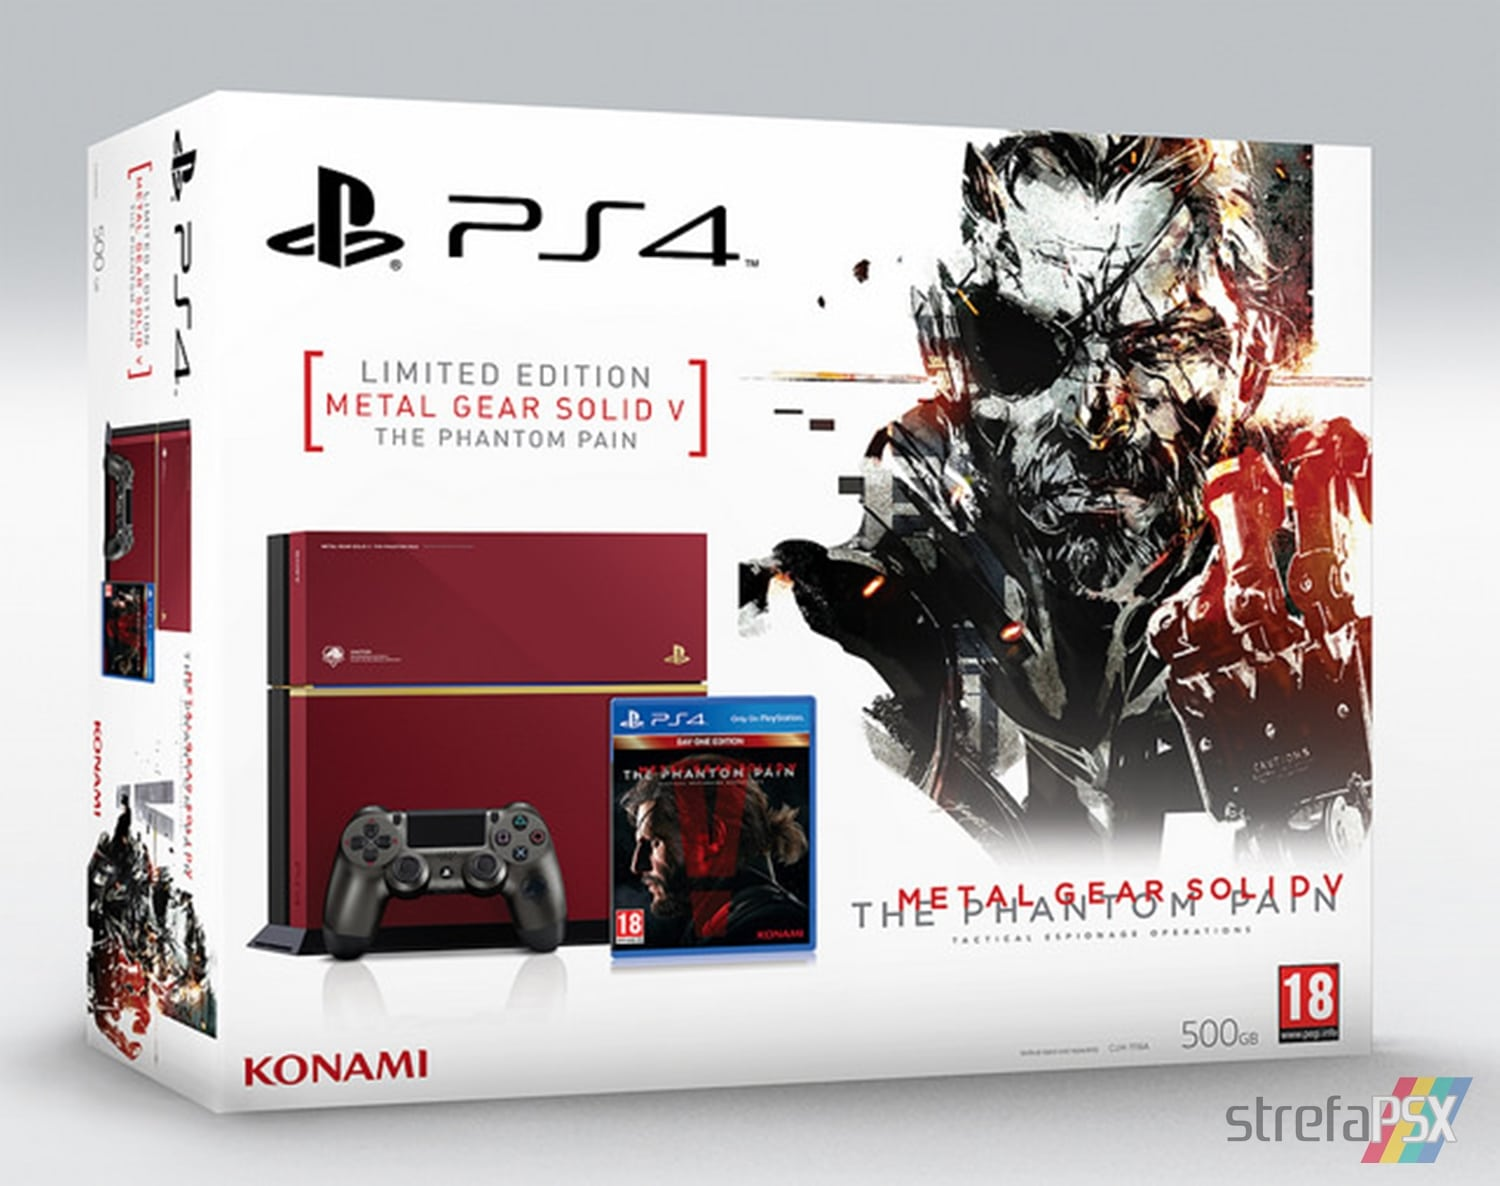 "ps4 metal gear solid 01 - PlayStation 4 FAT 500GB ""Metal Gear Solid V: The Phantom Pain"" Limited Edition"